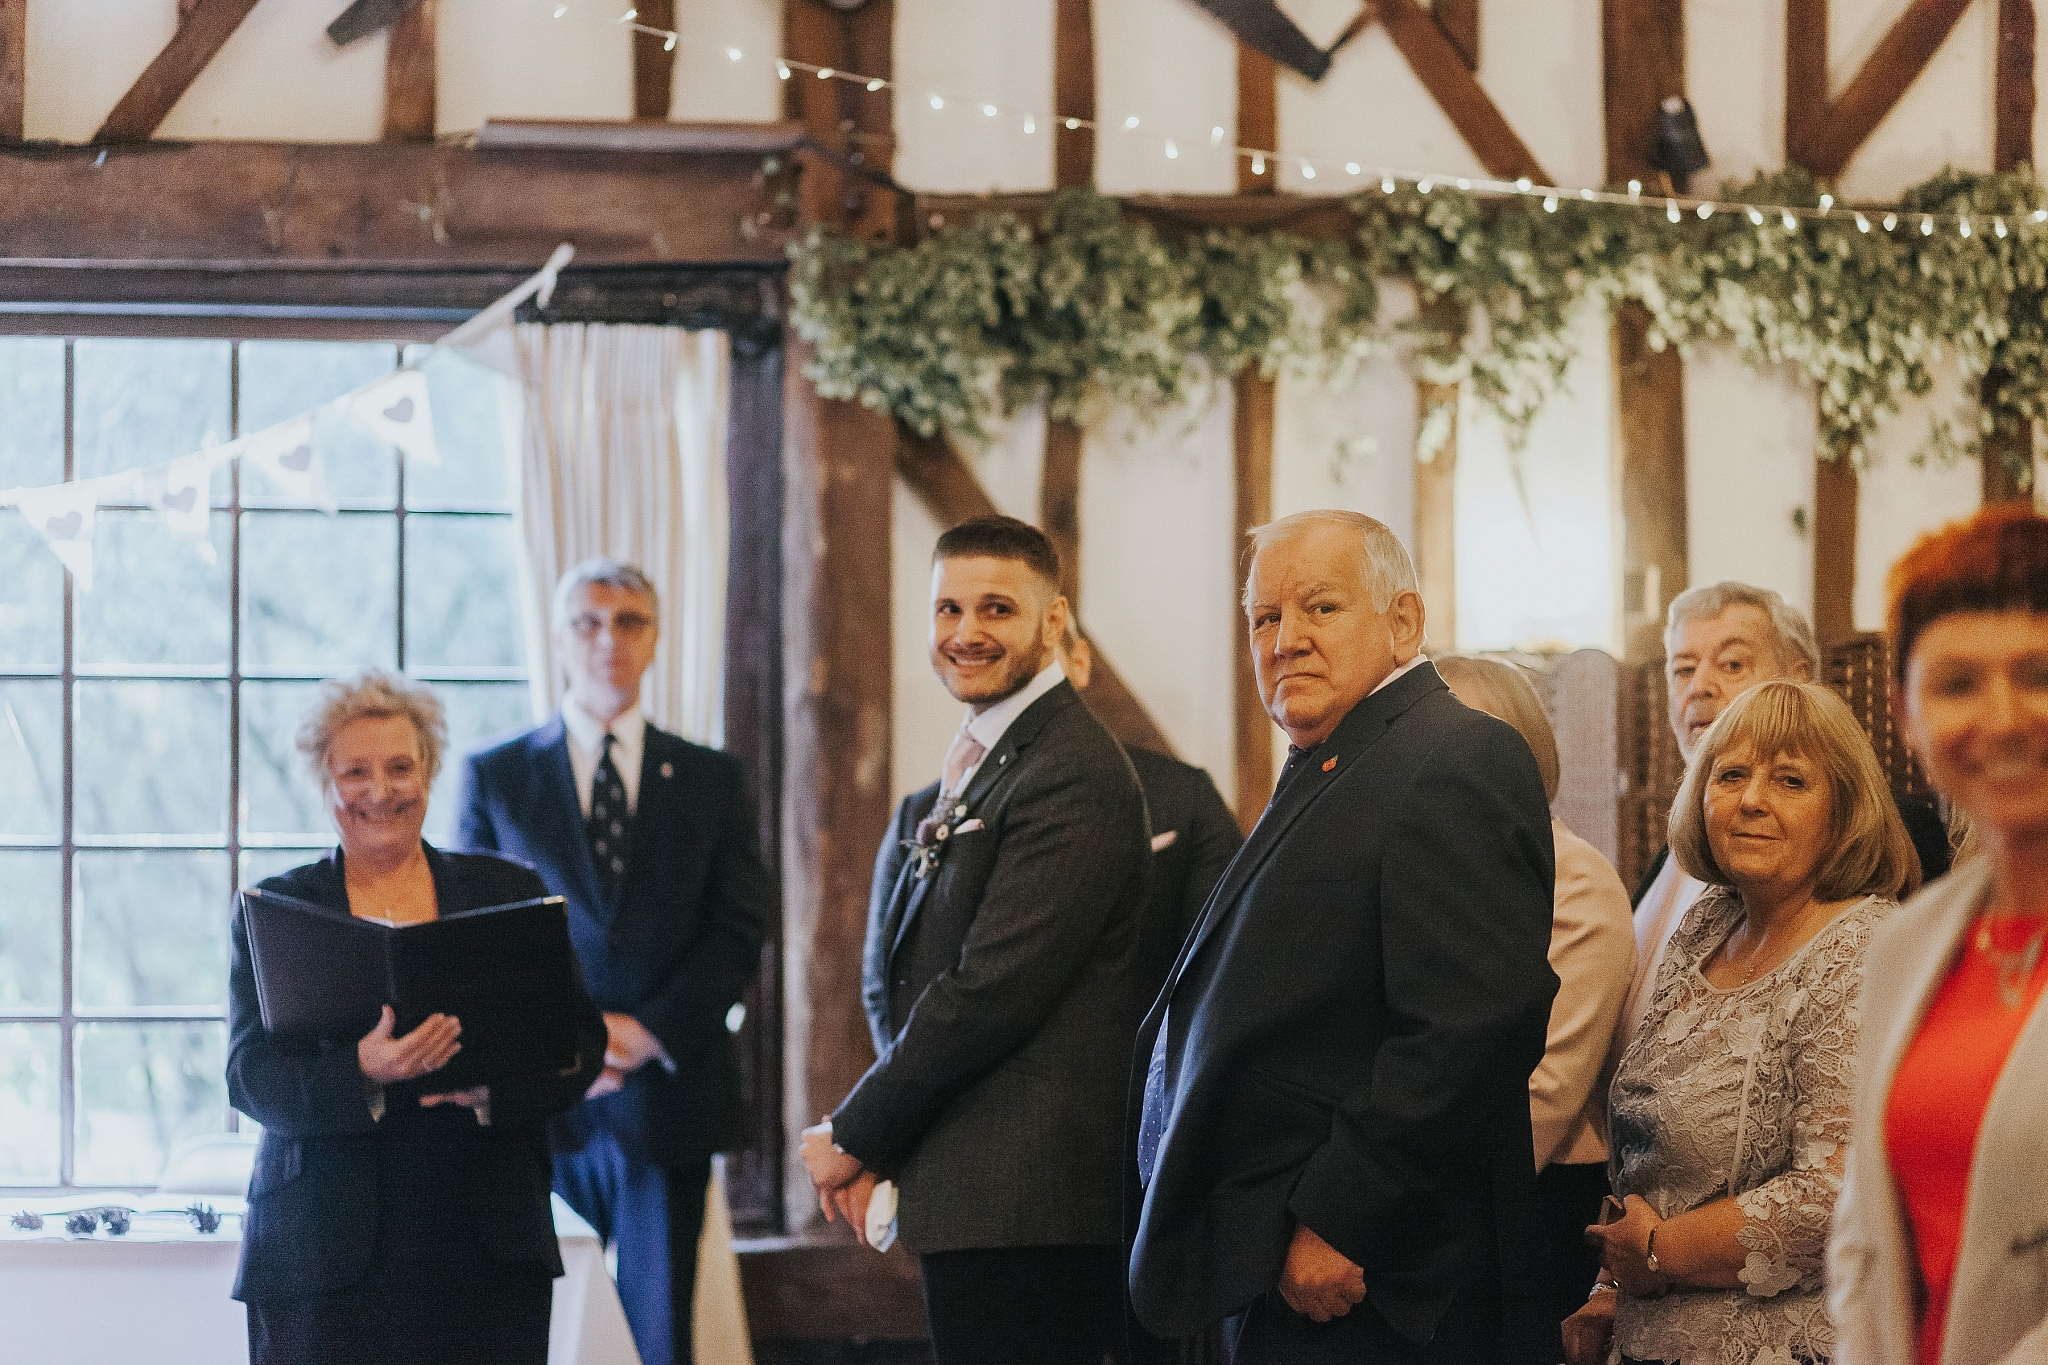 Country pub wedding kent Sam and Tom The Plough At Leigh Wedding Photography 2